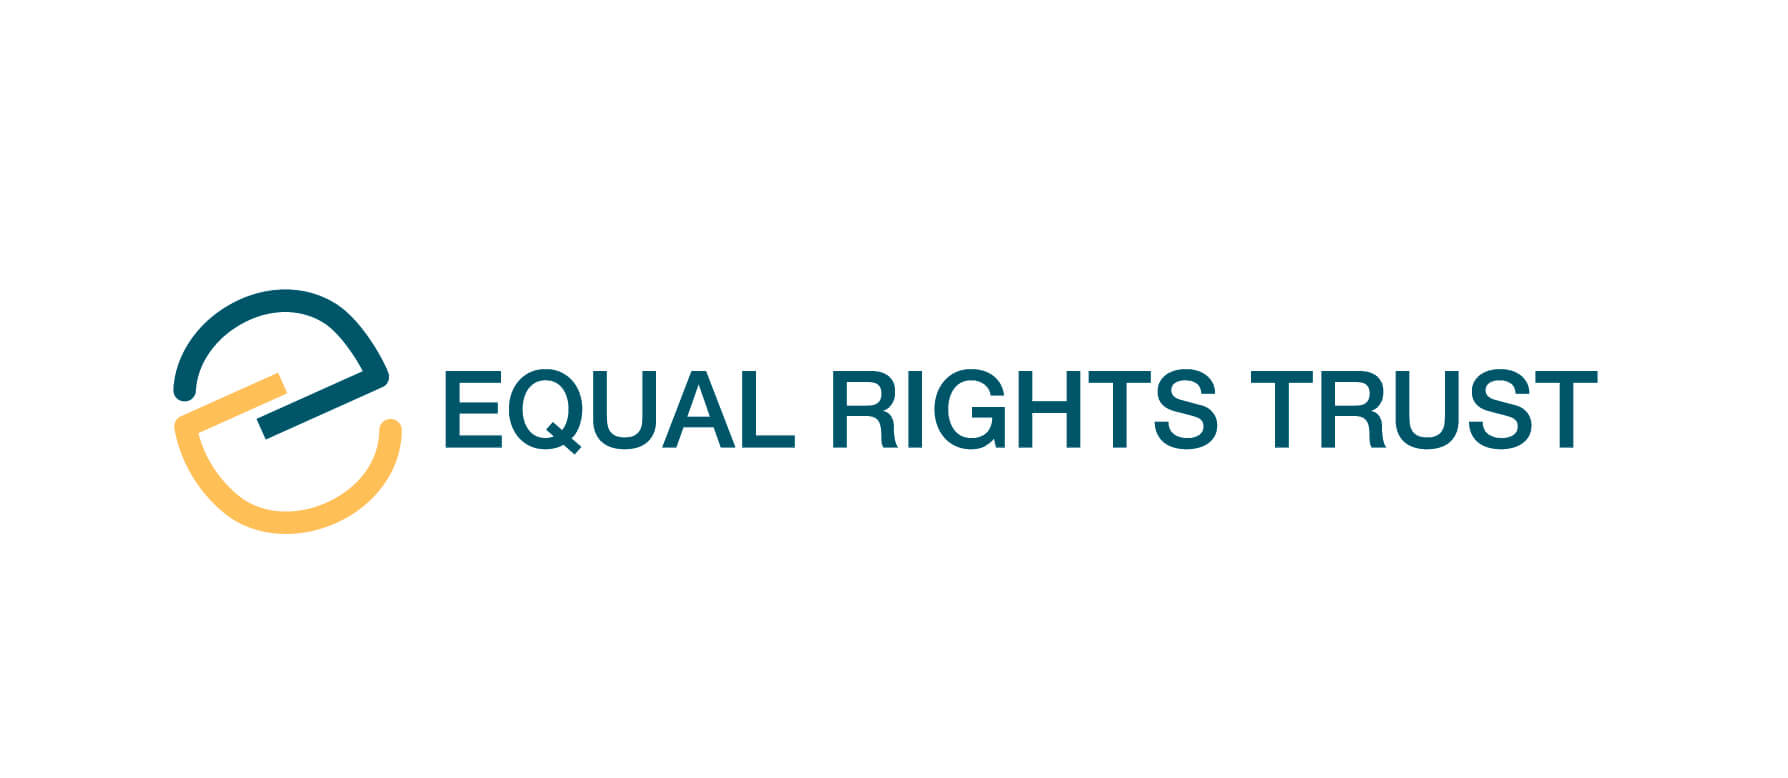 Equal Rights Trust Launches Bob Hepple Memorial Fund